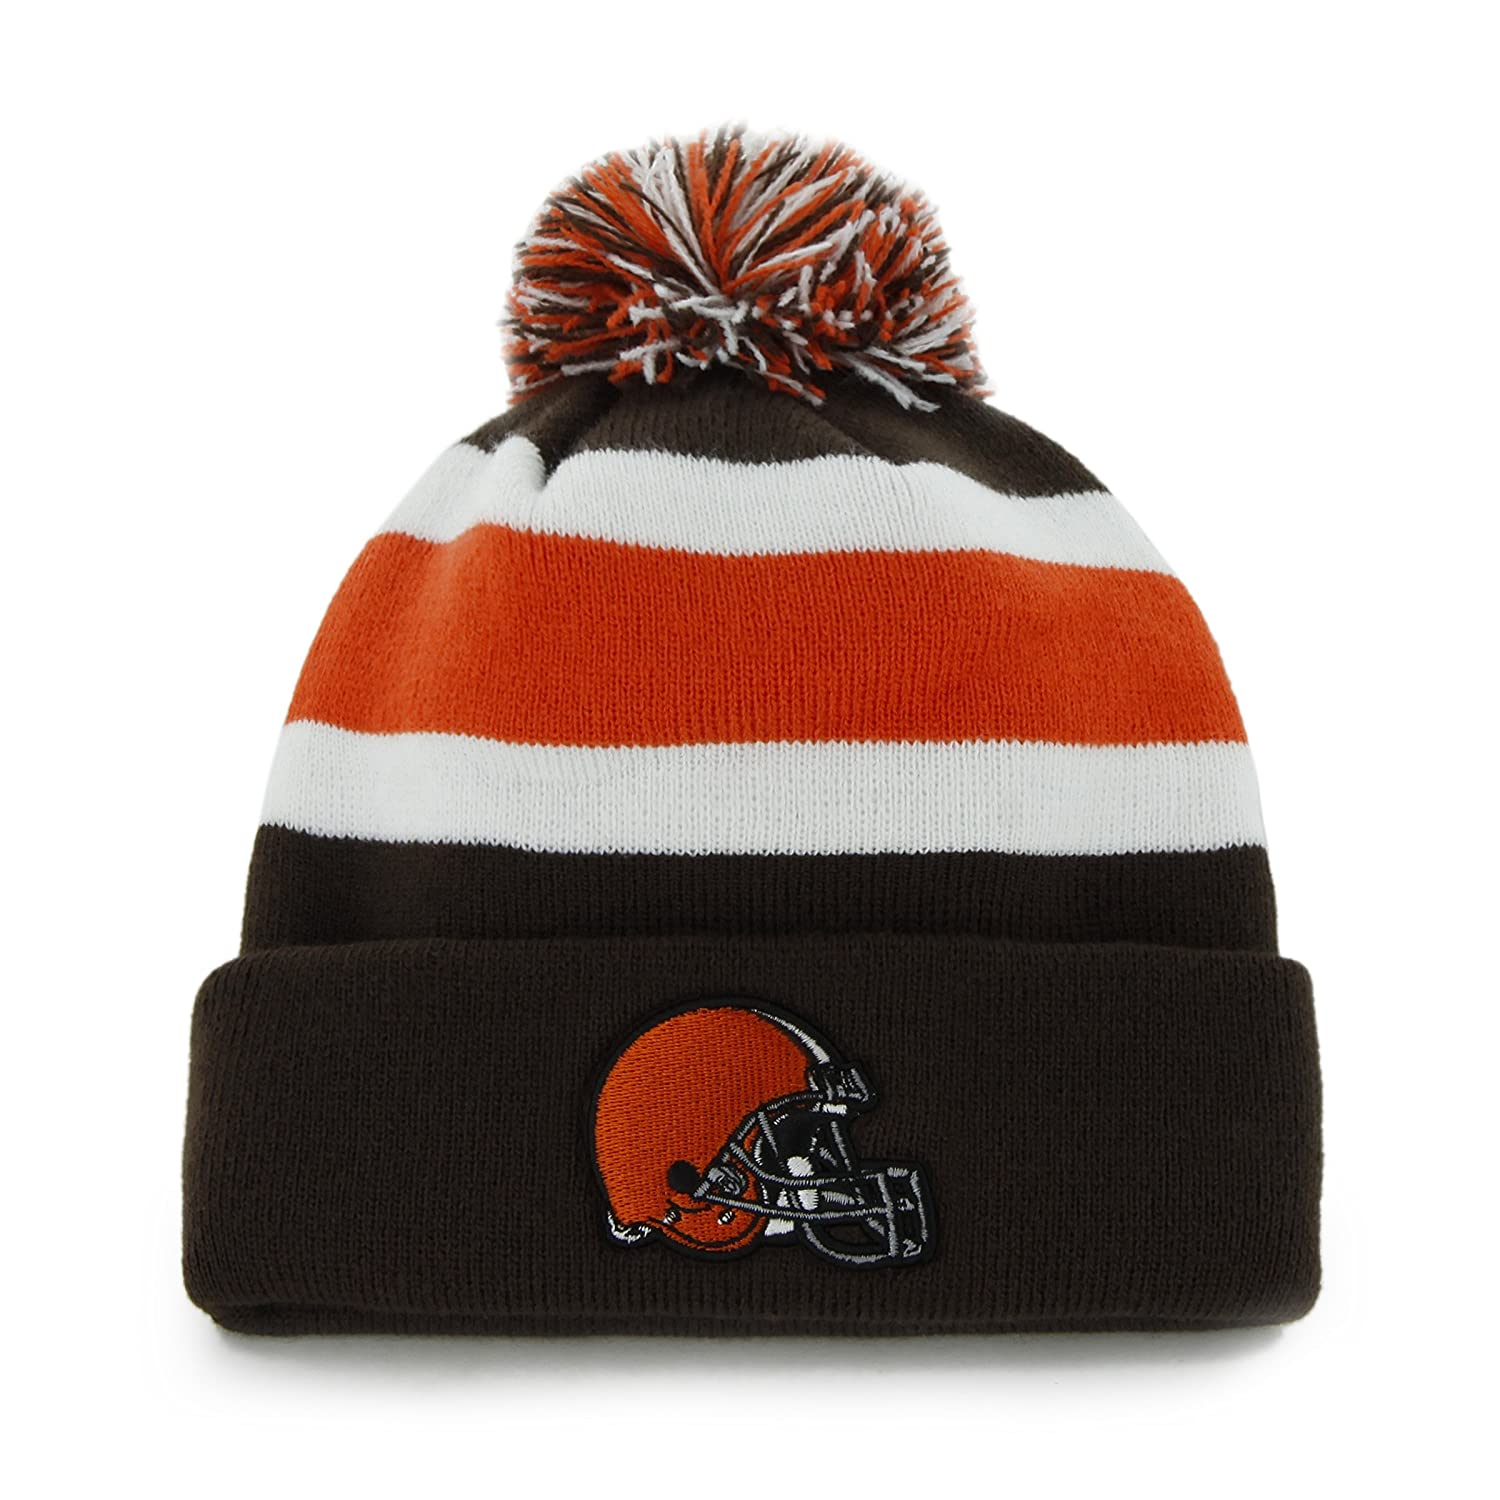 6a302b168 ... france amazon nfl cleveland browns mens breakaway knit cap one size  brown sports fan beanies clothing